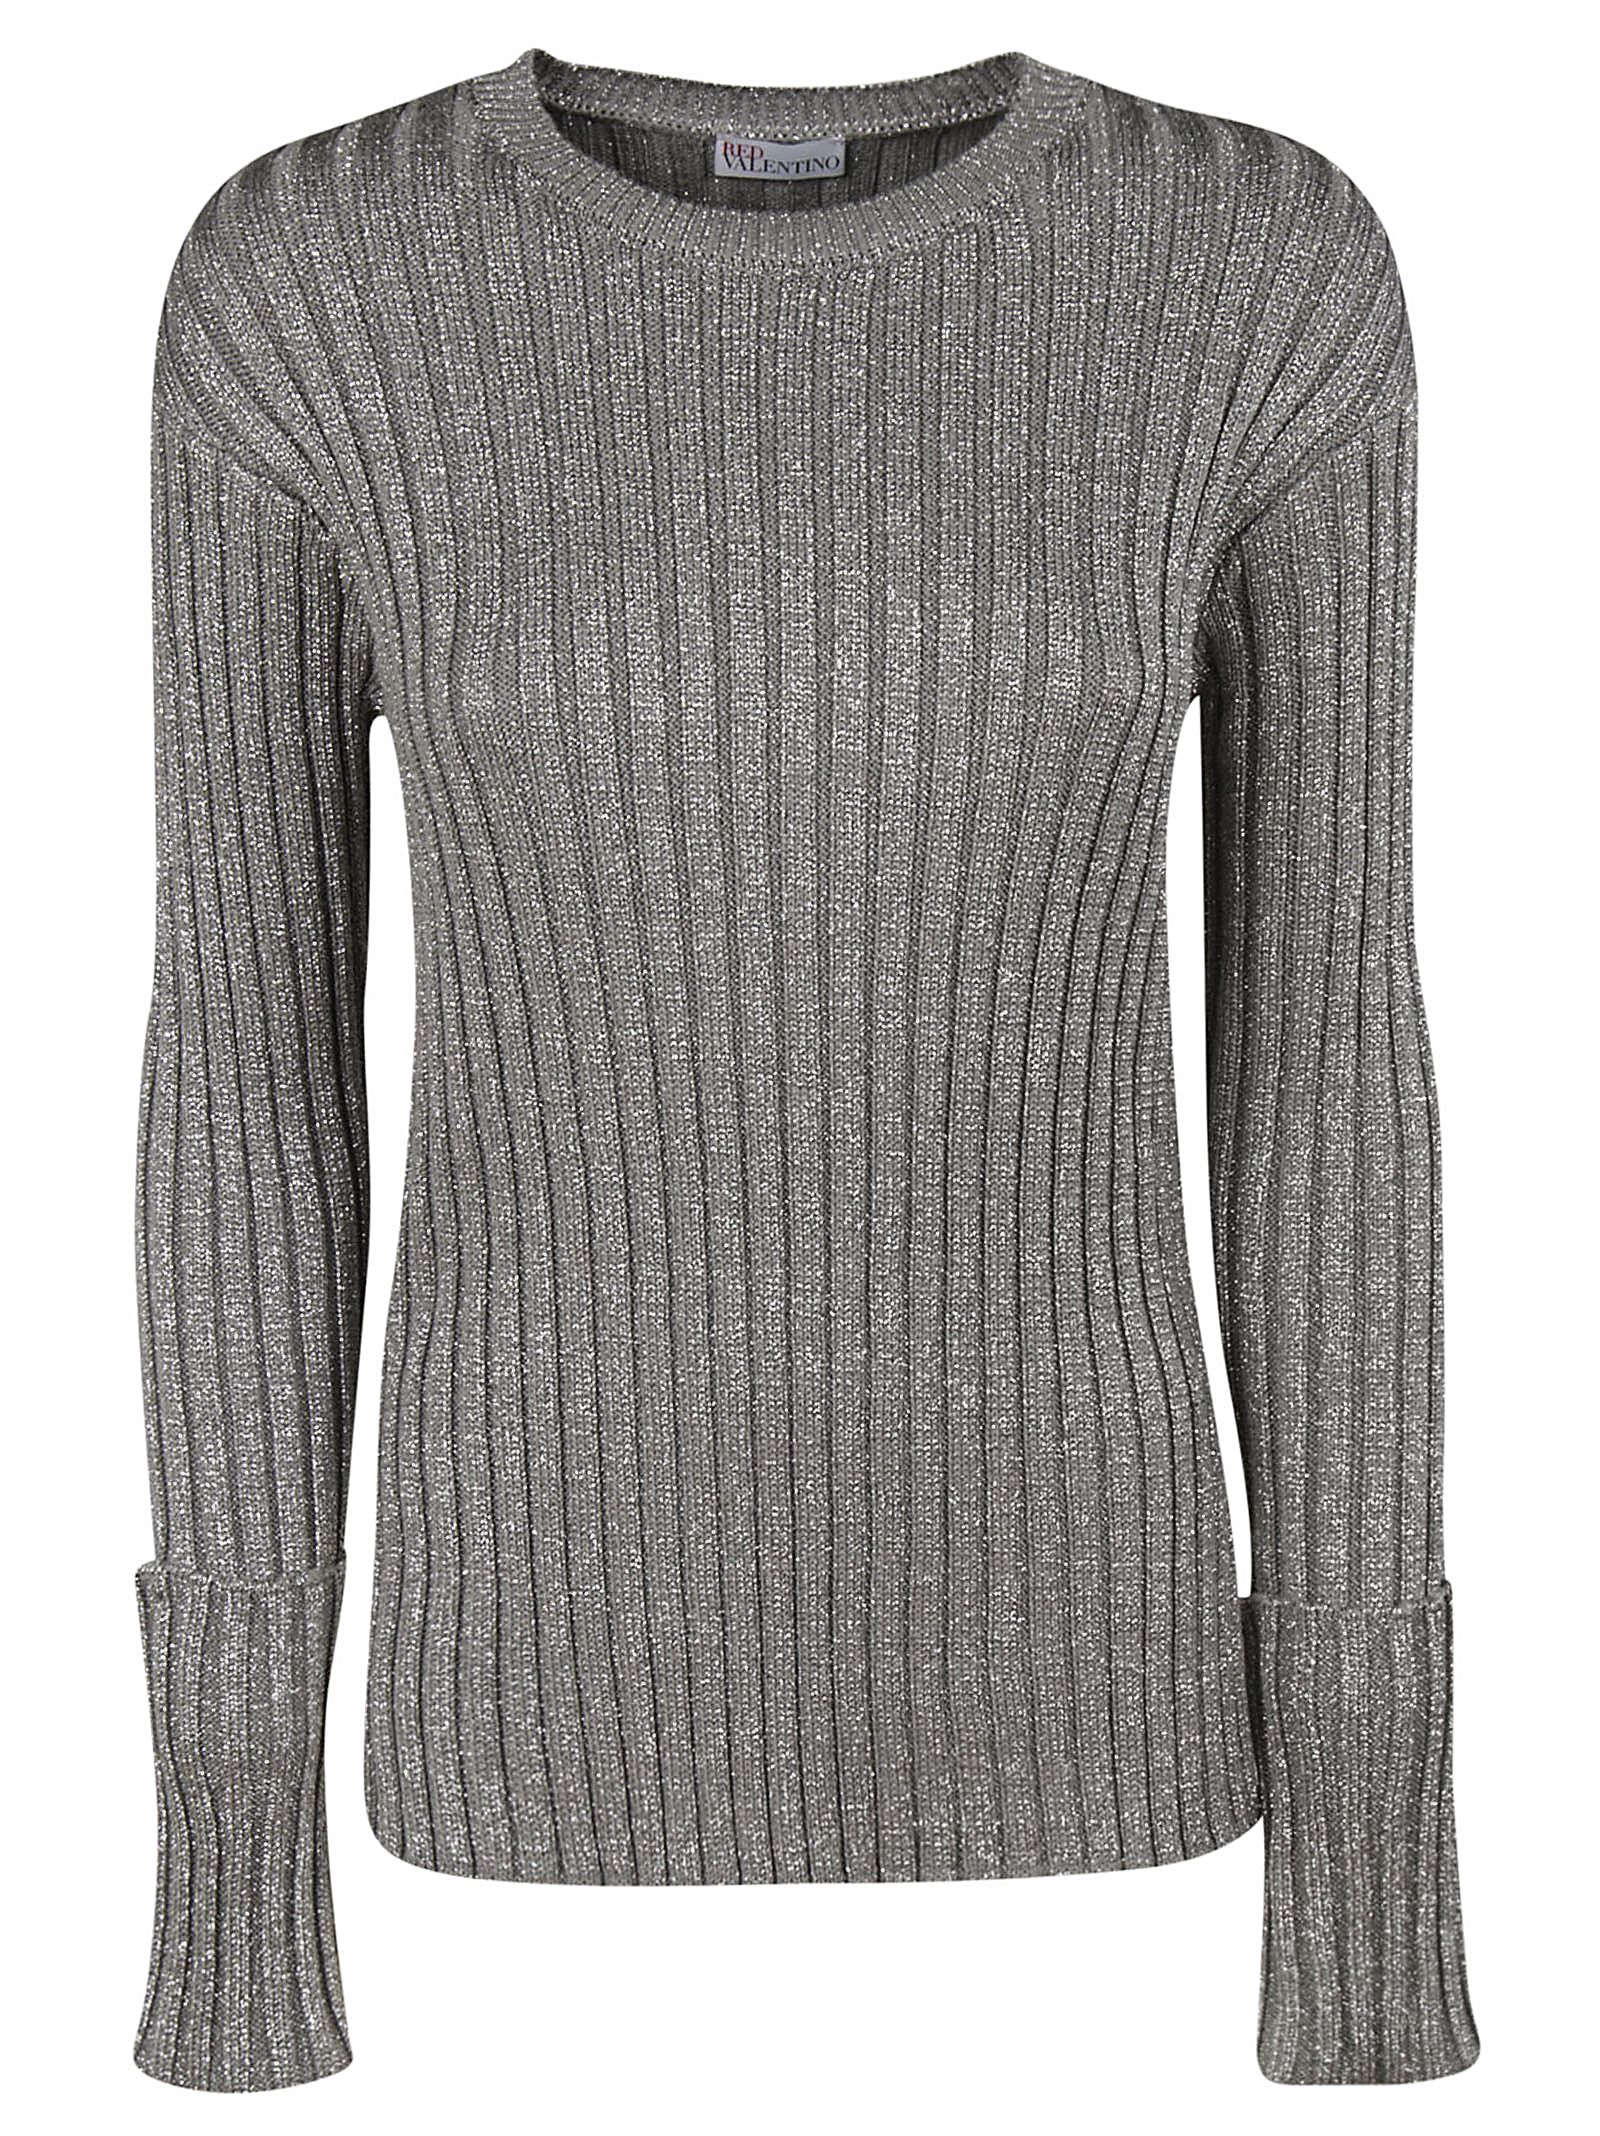 58648031a6 RED Valentino Red Valentino Knitted Sweater - Silver - 10805888 ...